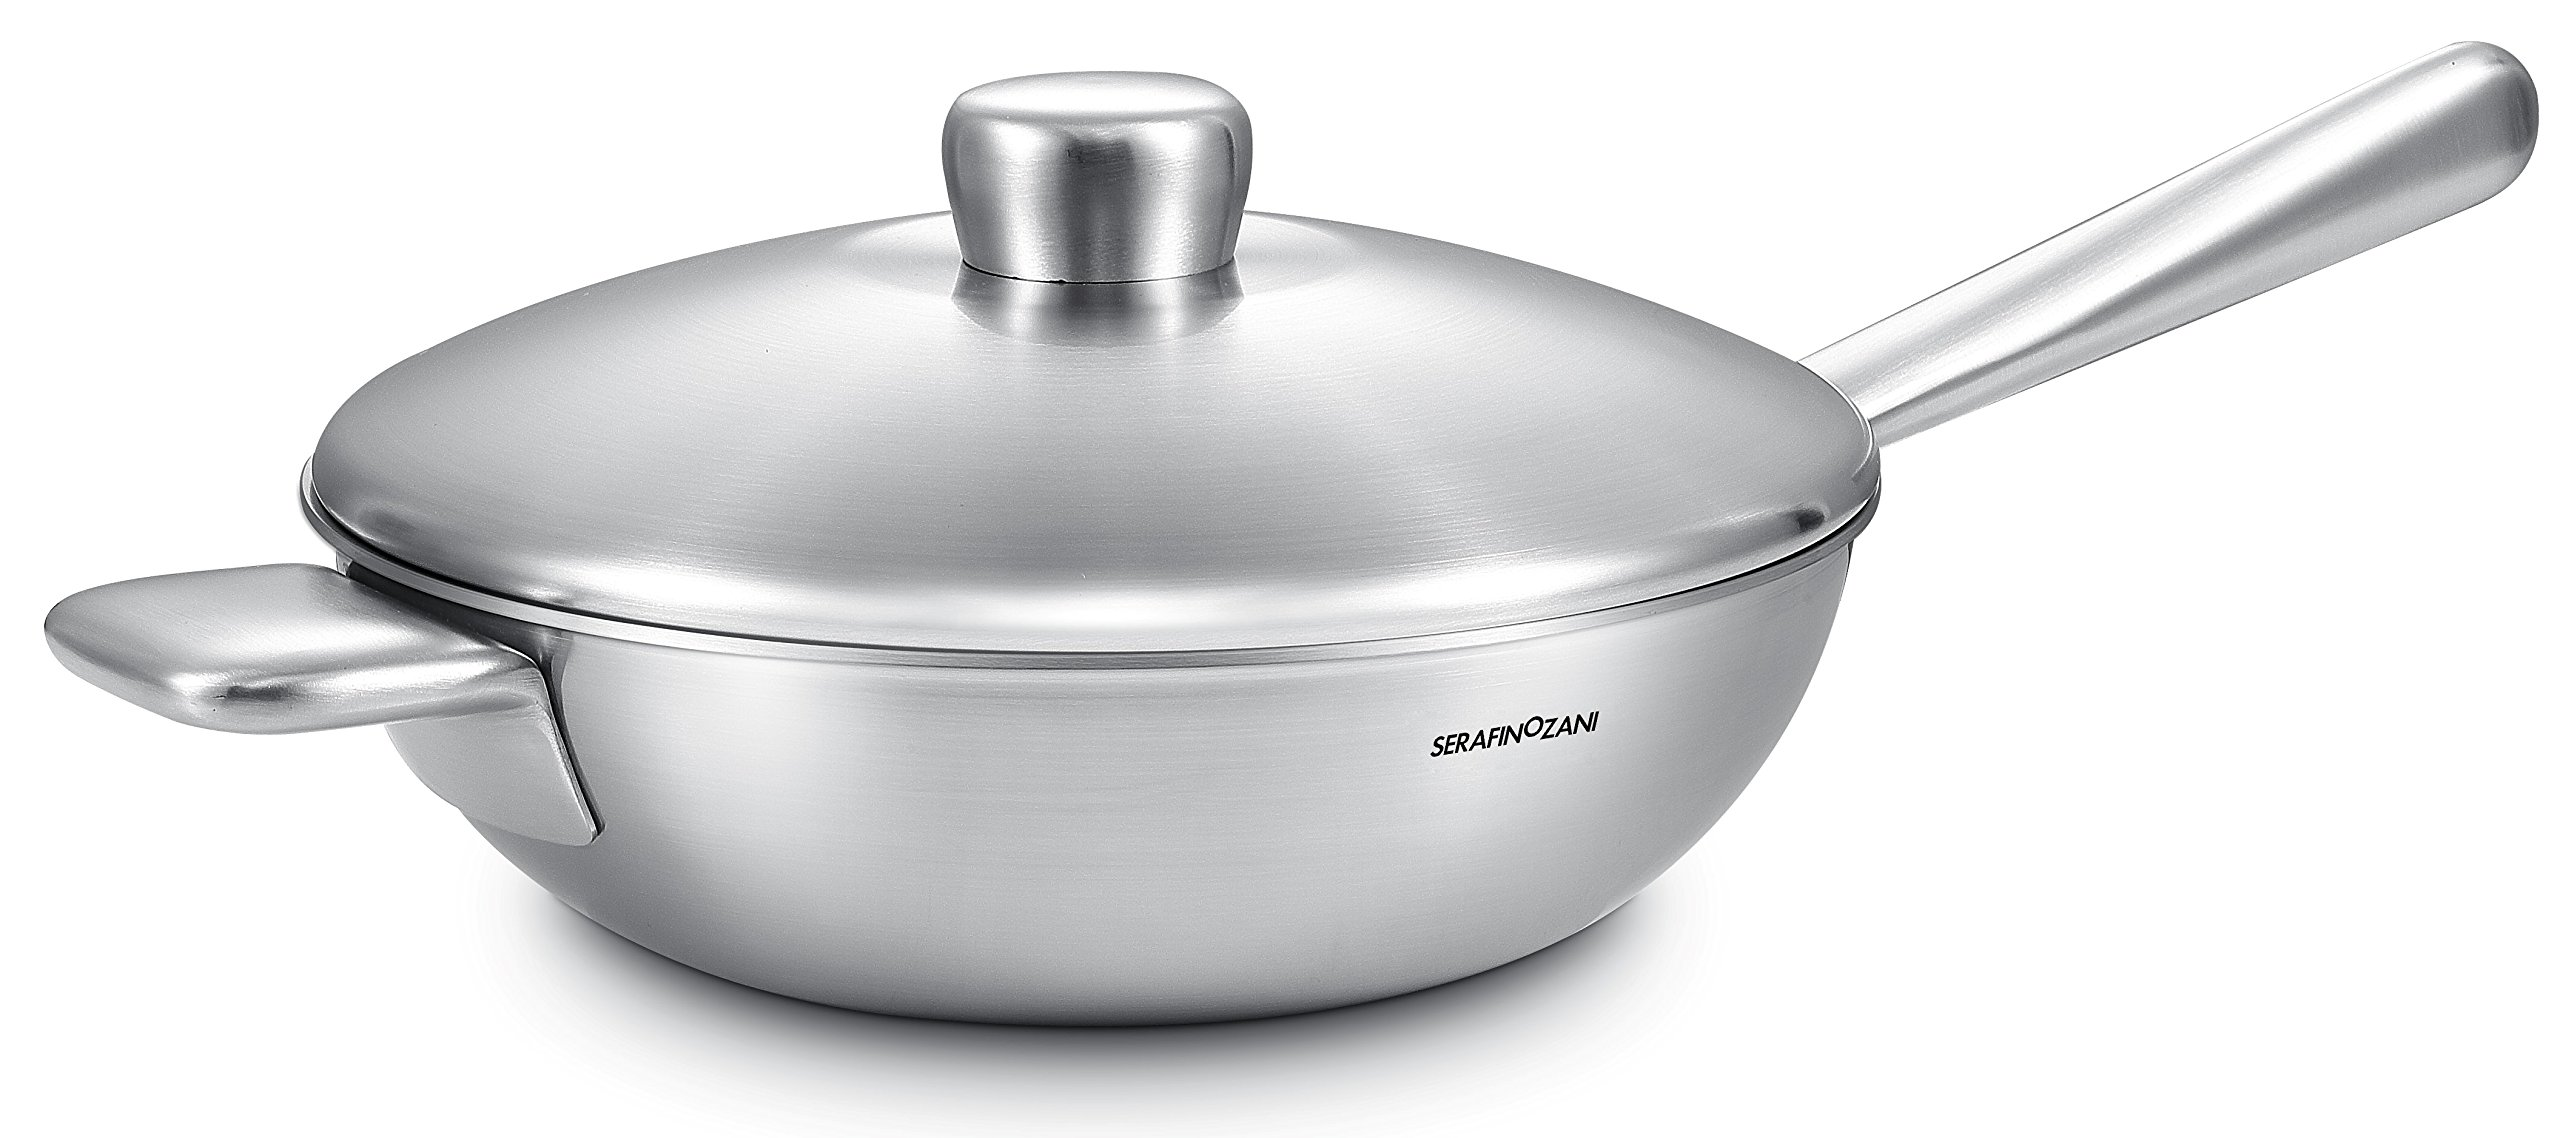 SERAFINO ZANI IHC CURIE Series Temperature Controlled 230℃ (466°F) 18/10 Stainless Steel 32CM (12-Inch) Stir-Fry Wok/Chefs Pan with Cover (The Thermostat Just For Induction Cooktop)